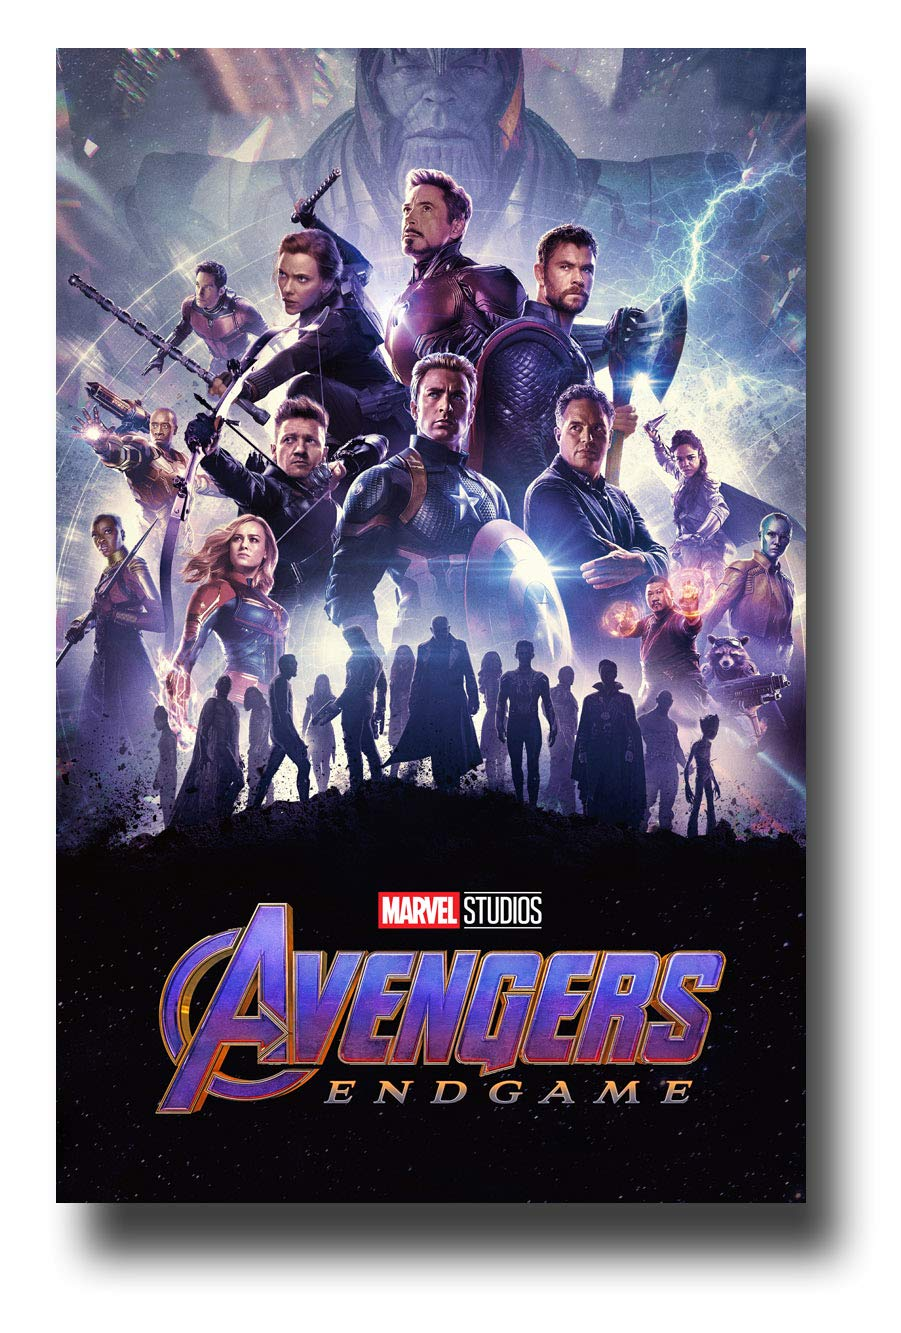 Avengers Endgame Poster Movie Promo 11 x 17 inches End Game International